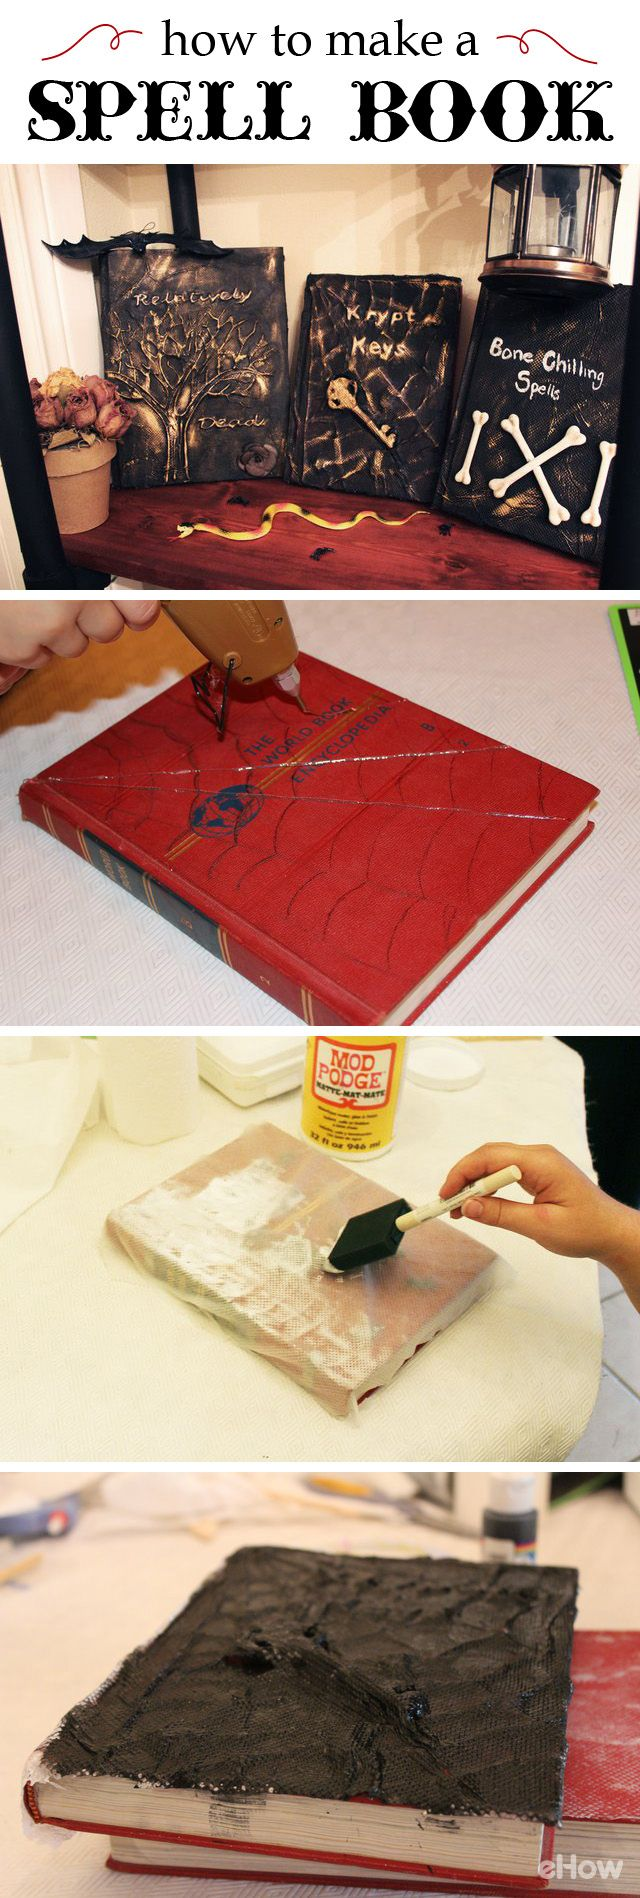 Photo of How to Make a Spell Book | eHow.com